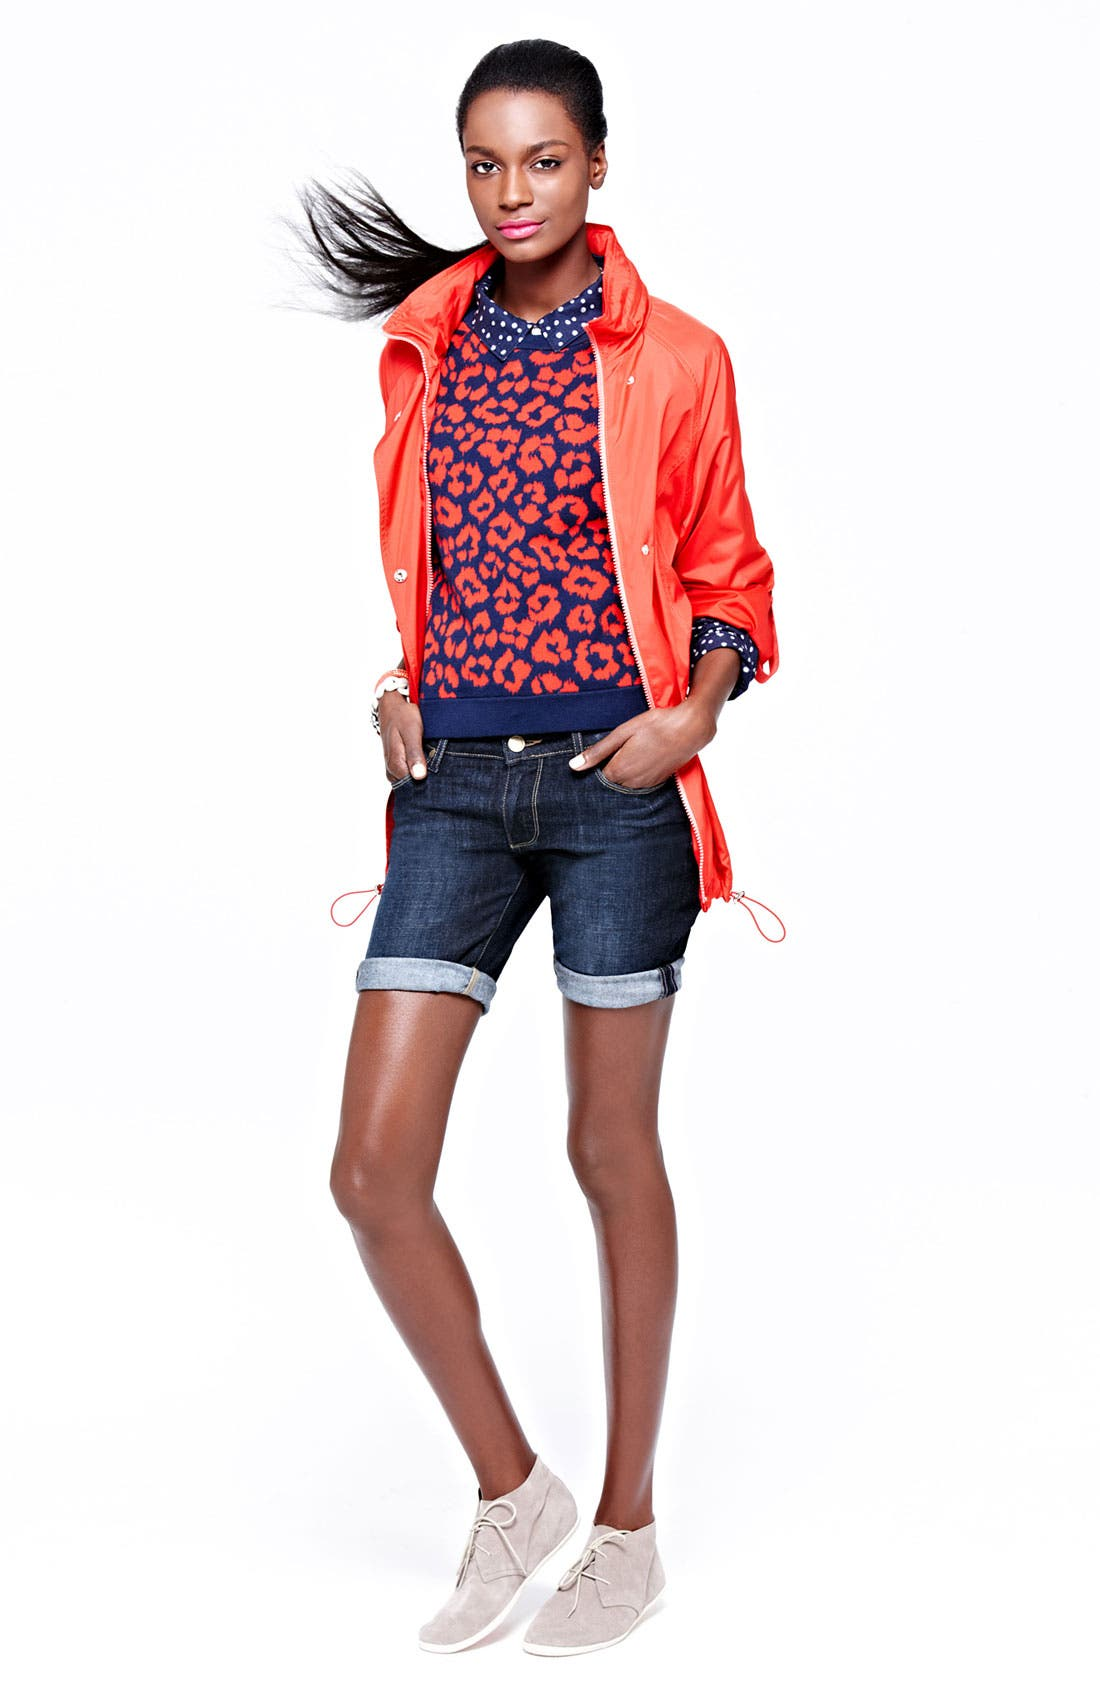 Alternate Image 1 Selected - Vince Camuto Jacket, Marc by Marc Jacobs Sweater & Paige Denim Shorts